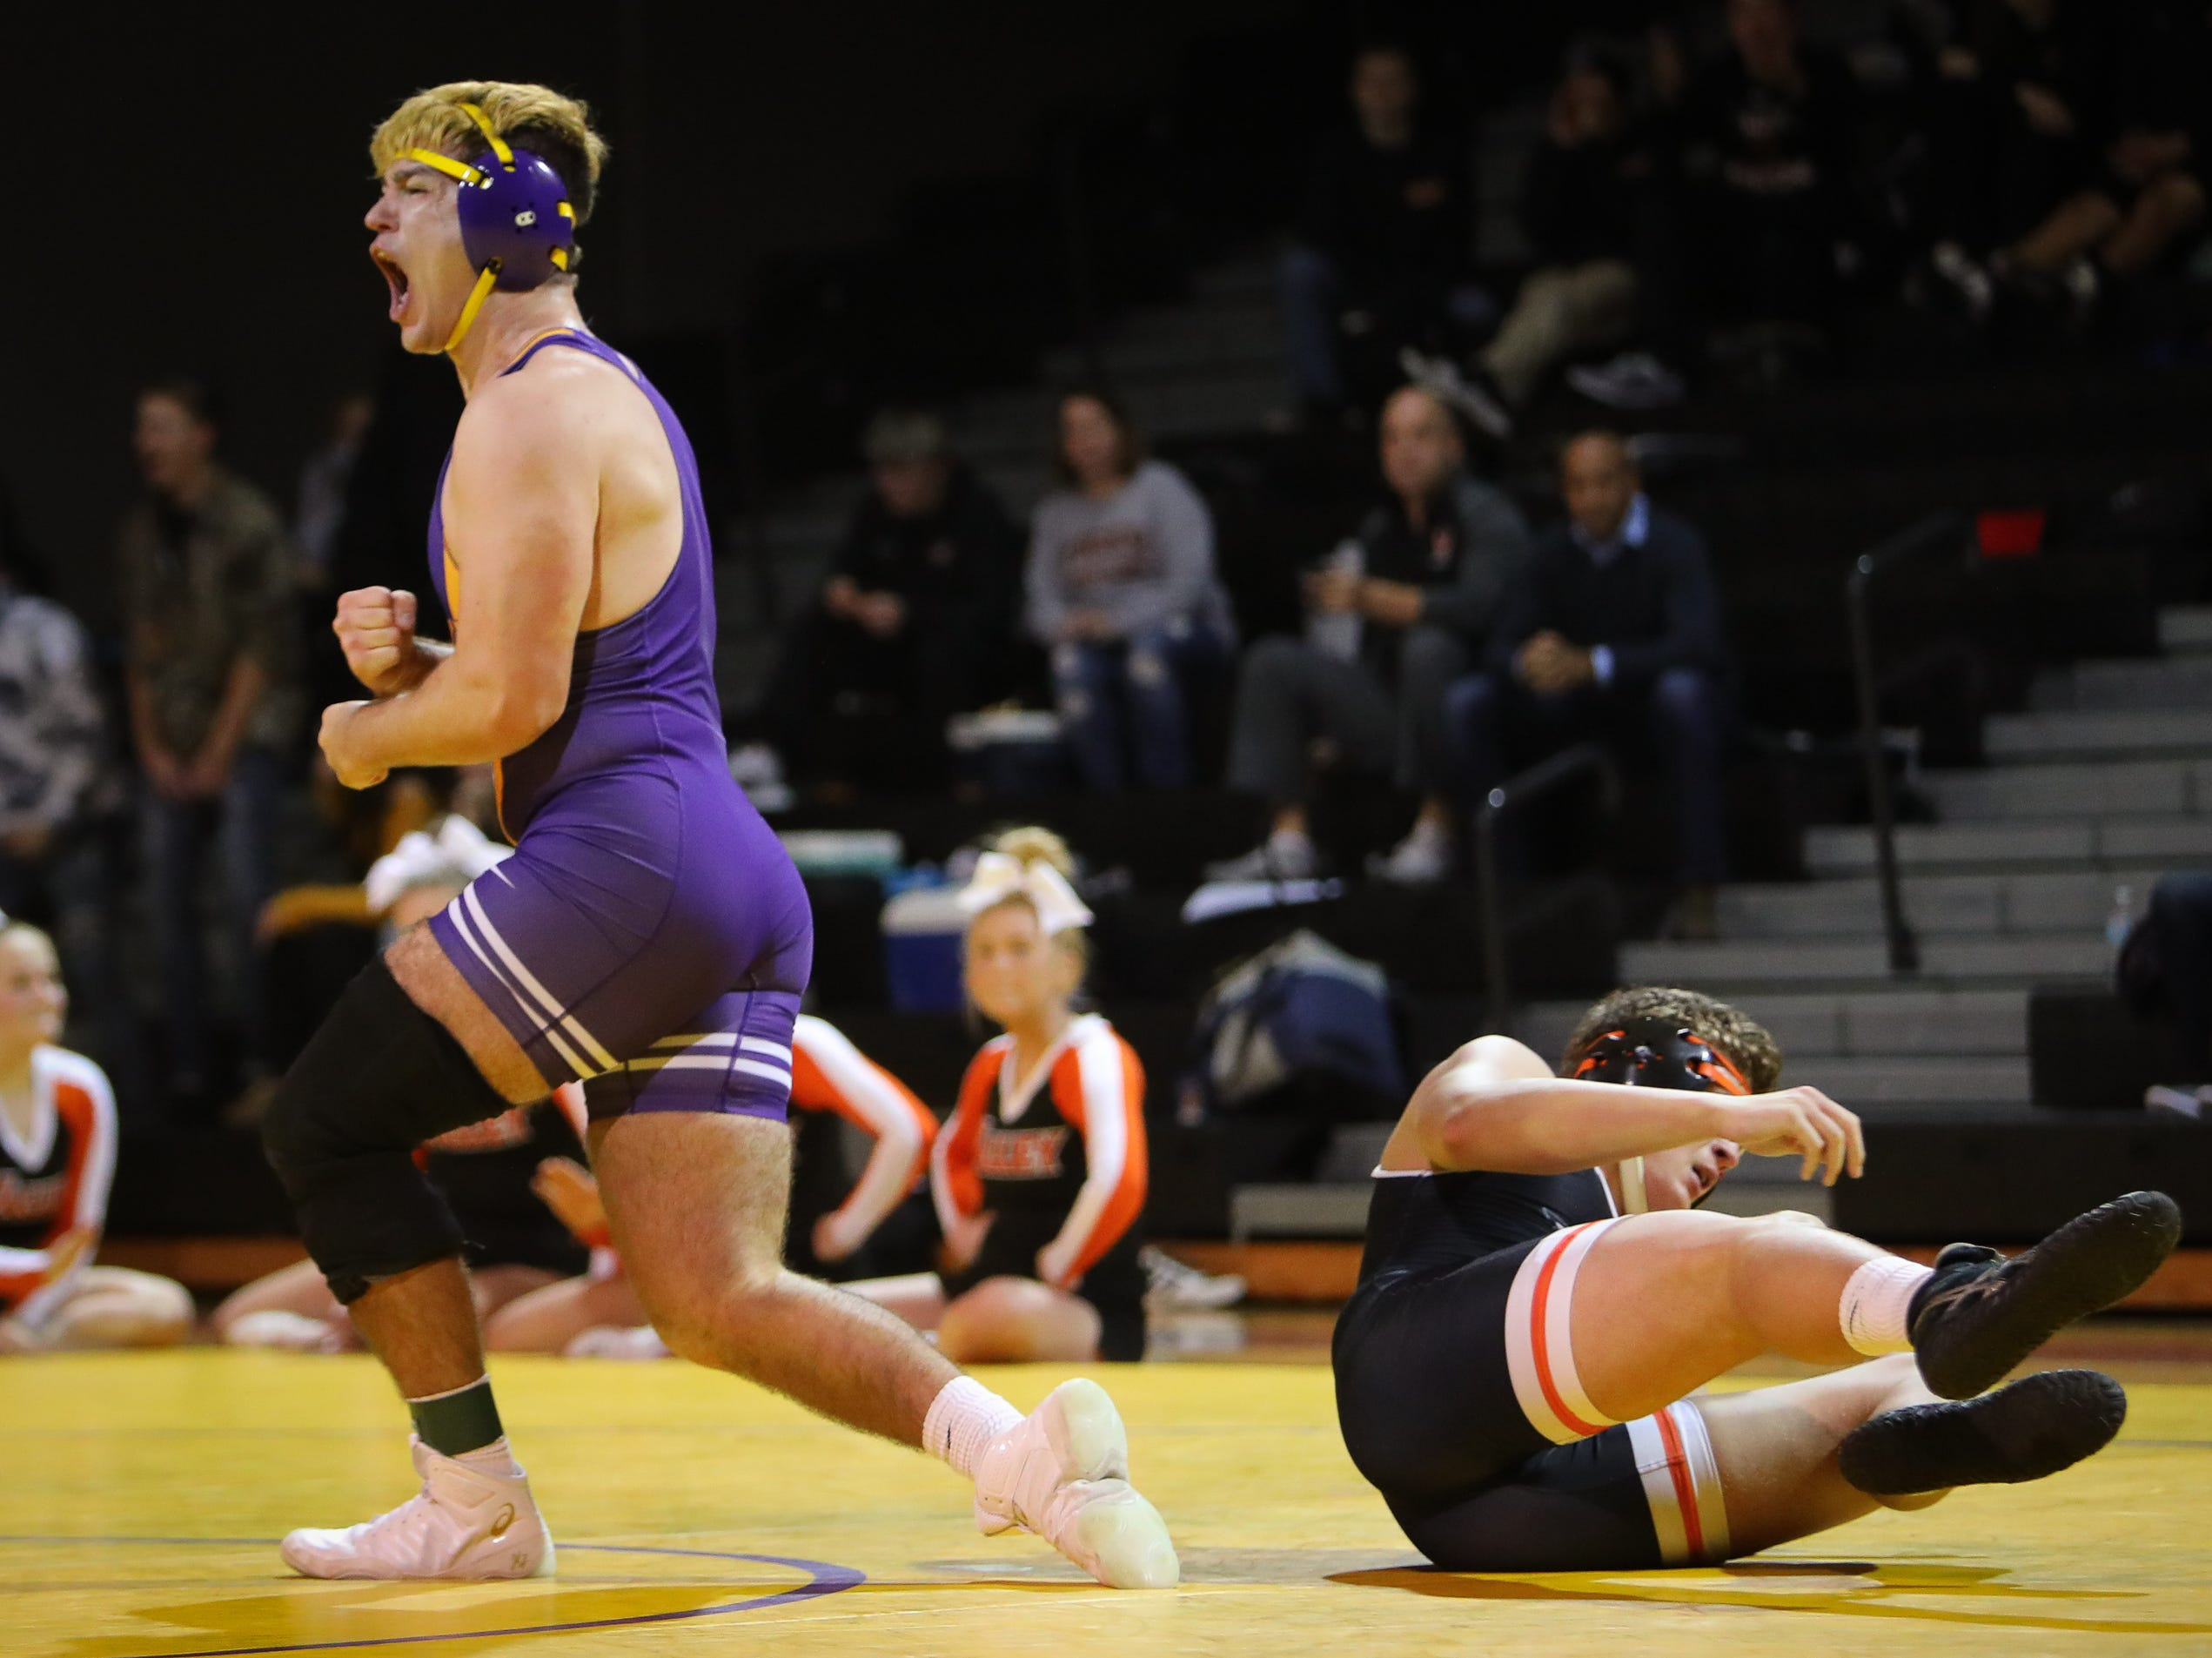 Waukee senior Gabe Gammell celebrates after recording a comeback victory over Valley junior C.J. Stillman in the 195-pound weight class during a high school wrestling meet between the Valley Tigers and the Waukee Warriors at Waukee High School on Dec. 20, 2018 in Waukee, Iowa.